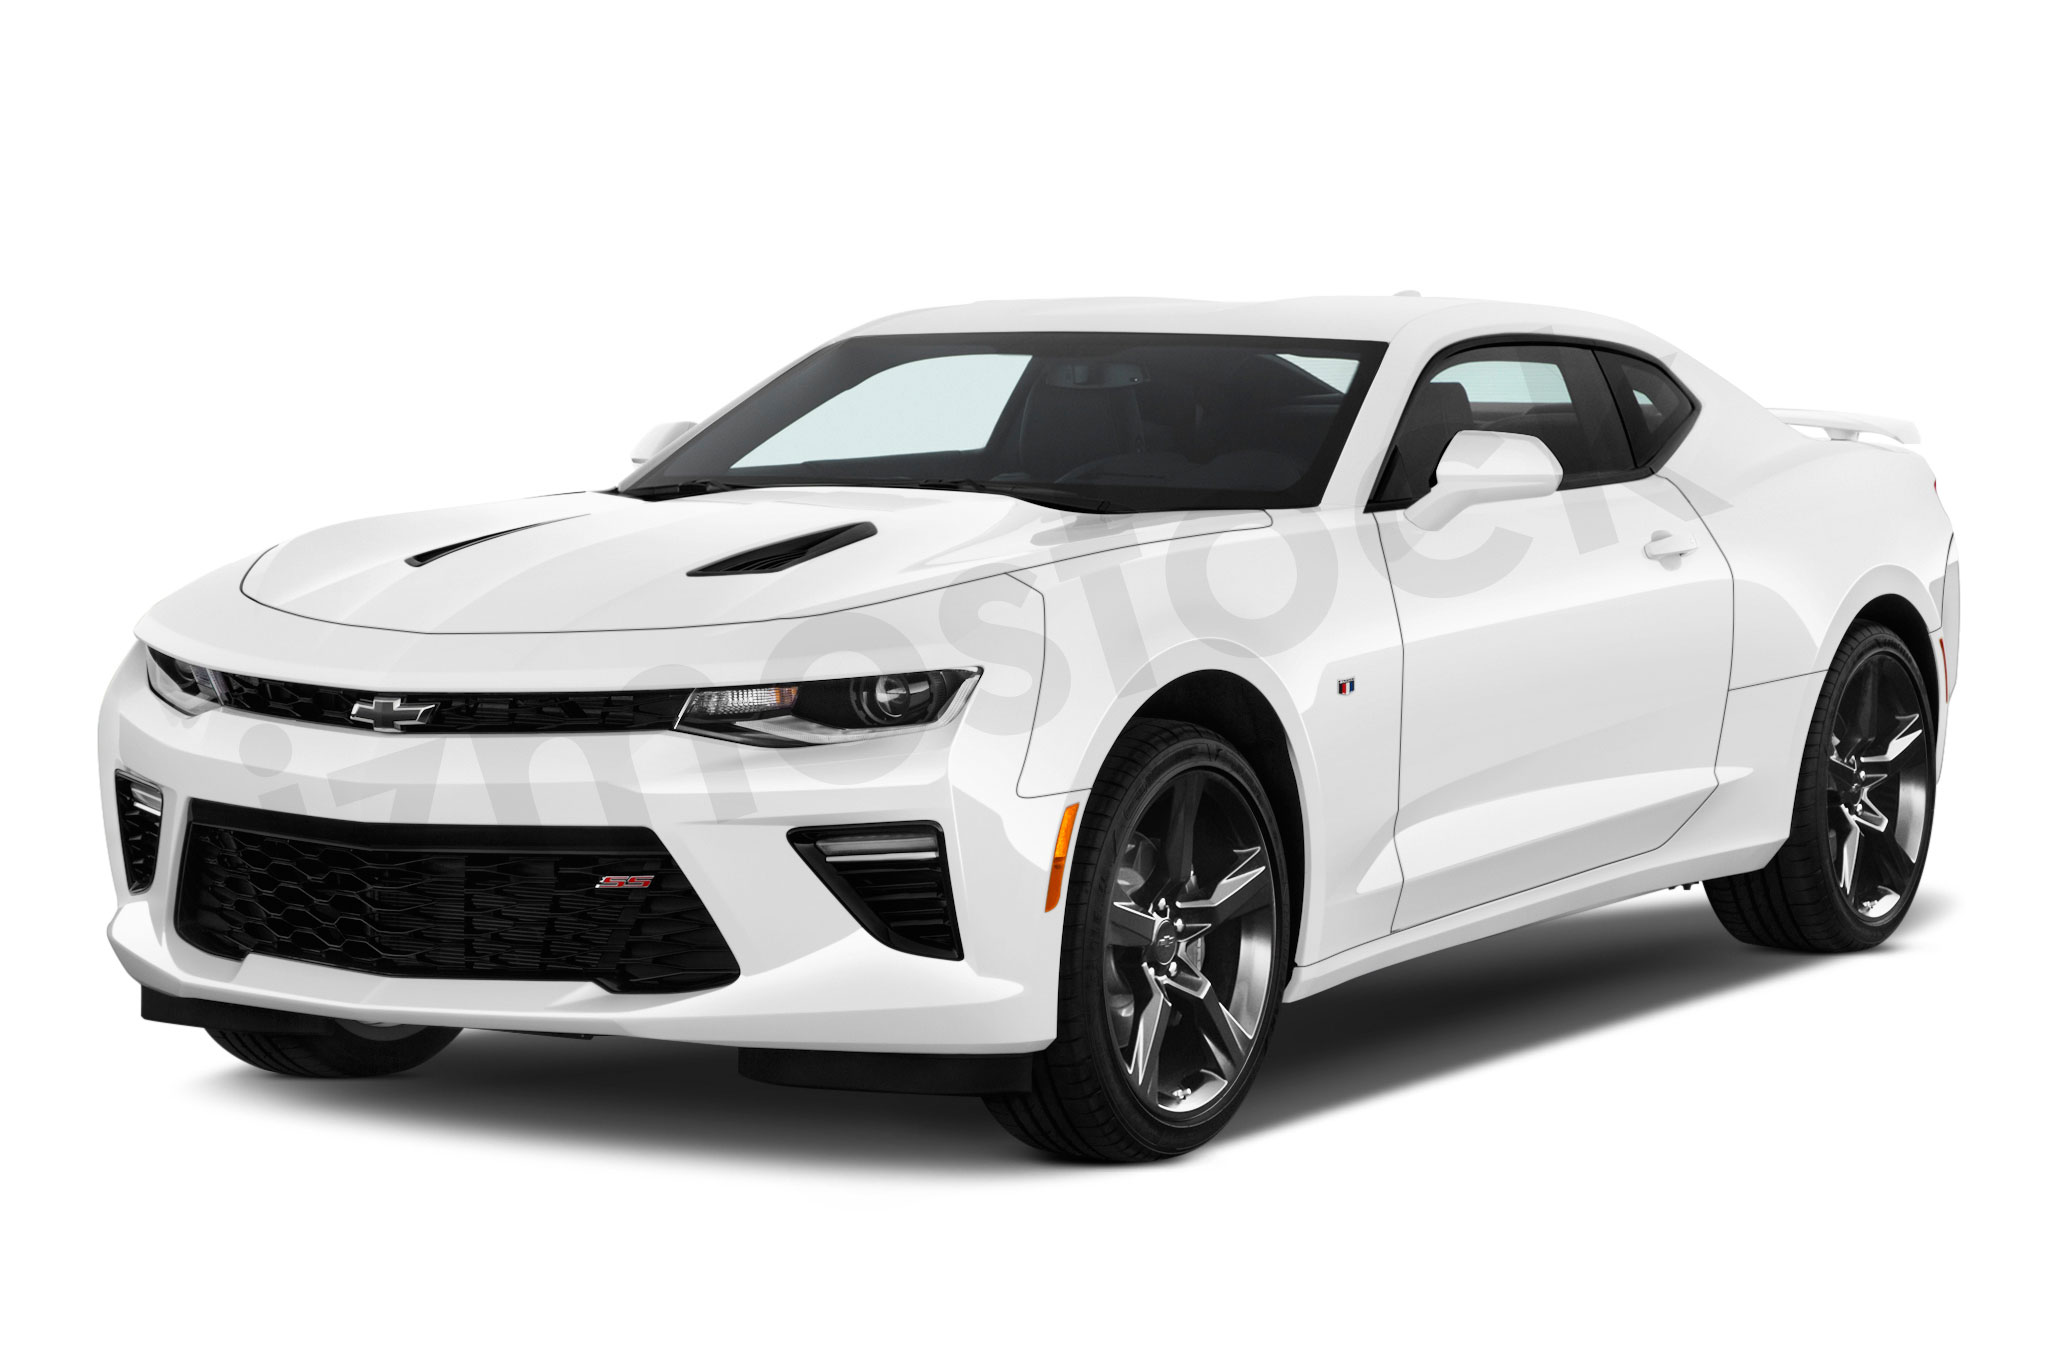 2017 chevrolet camaro ss review 50 years of the iconic - Camaro ss ...